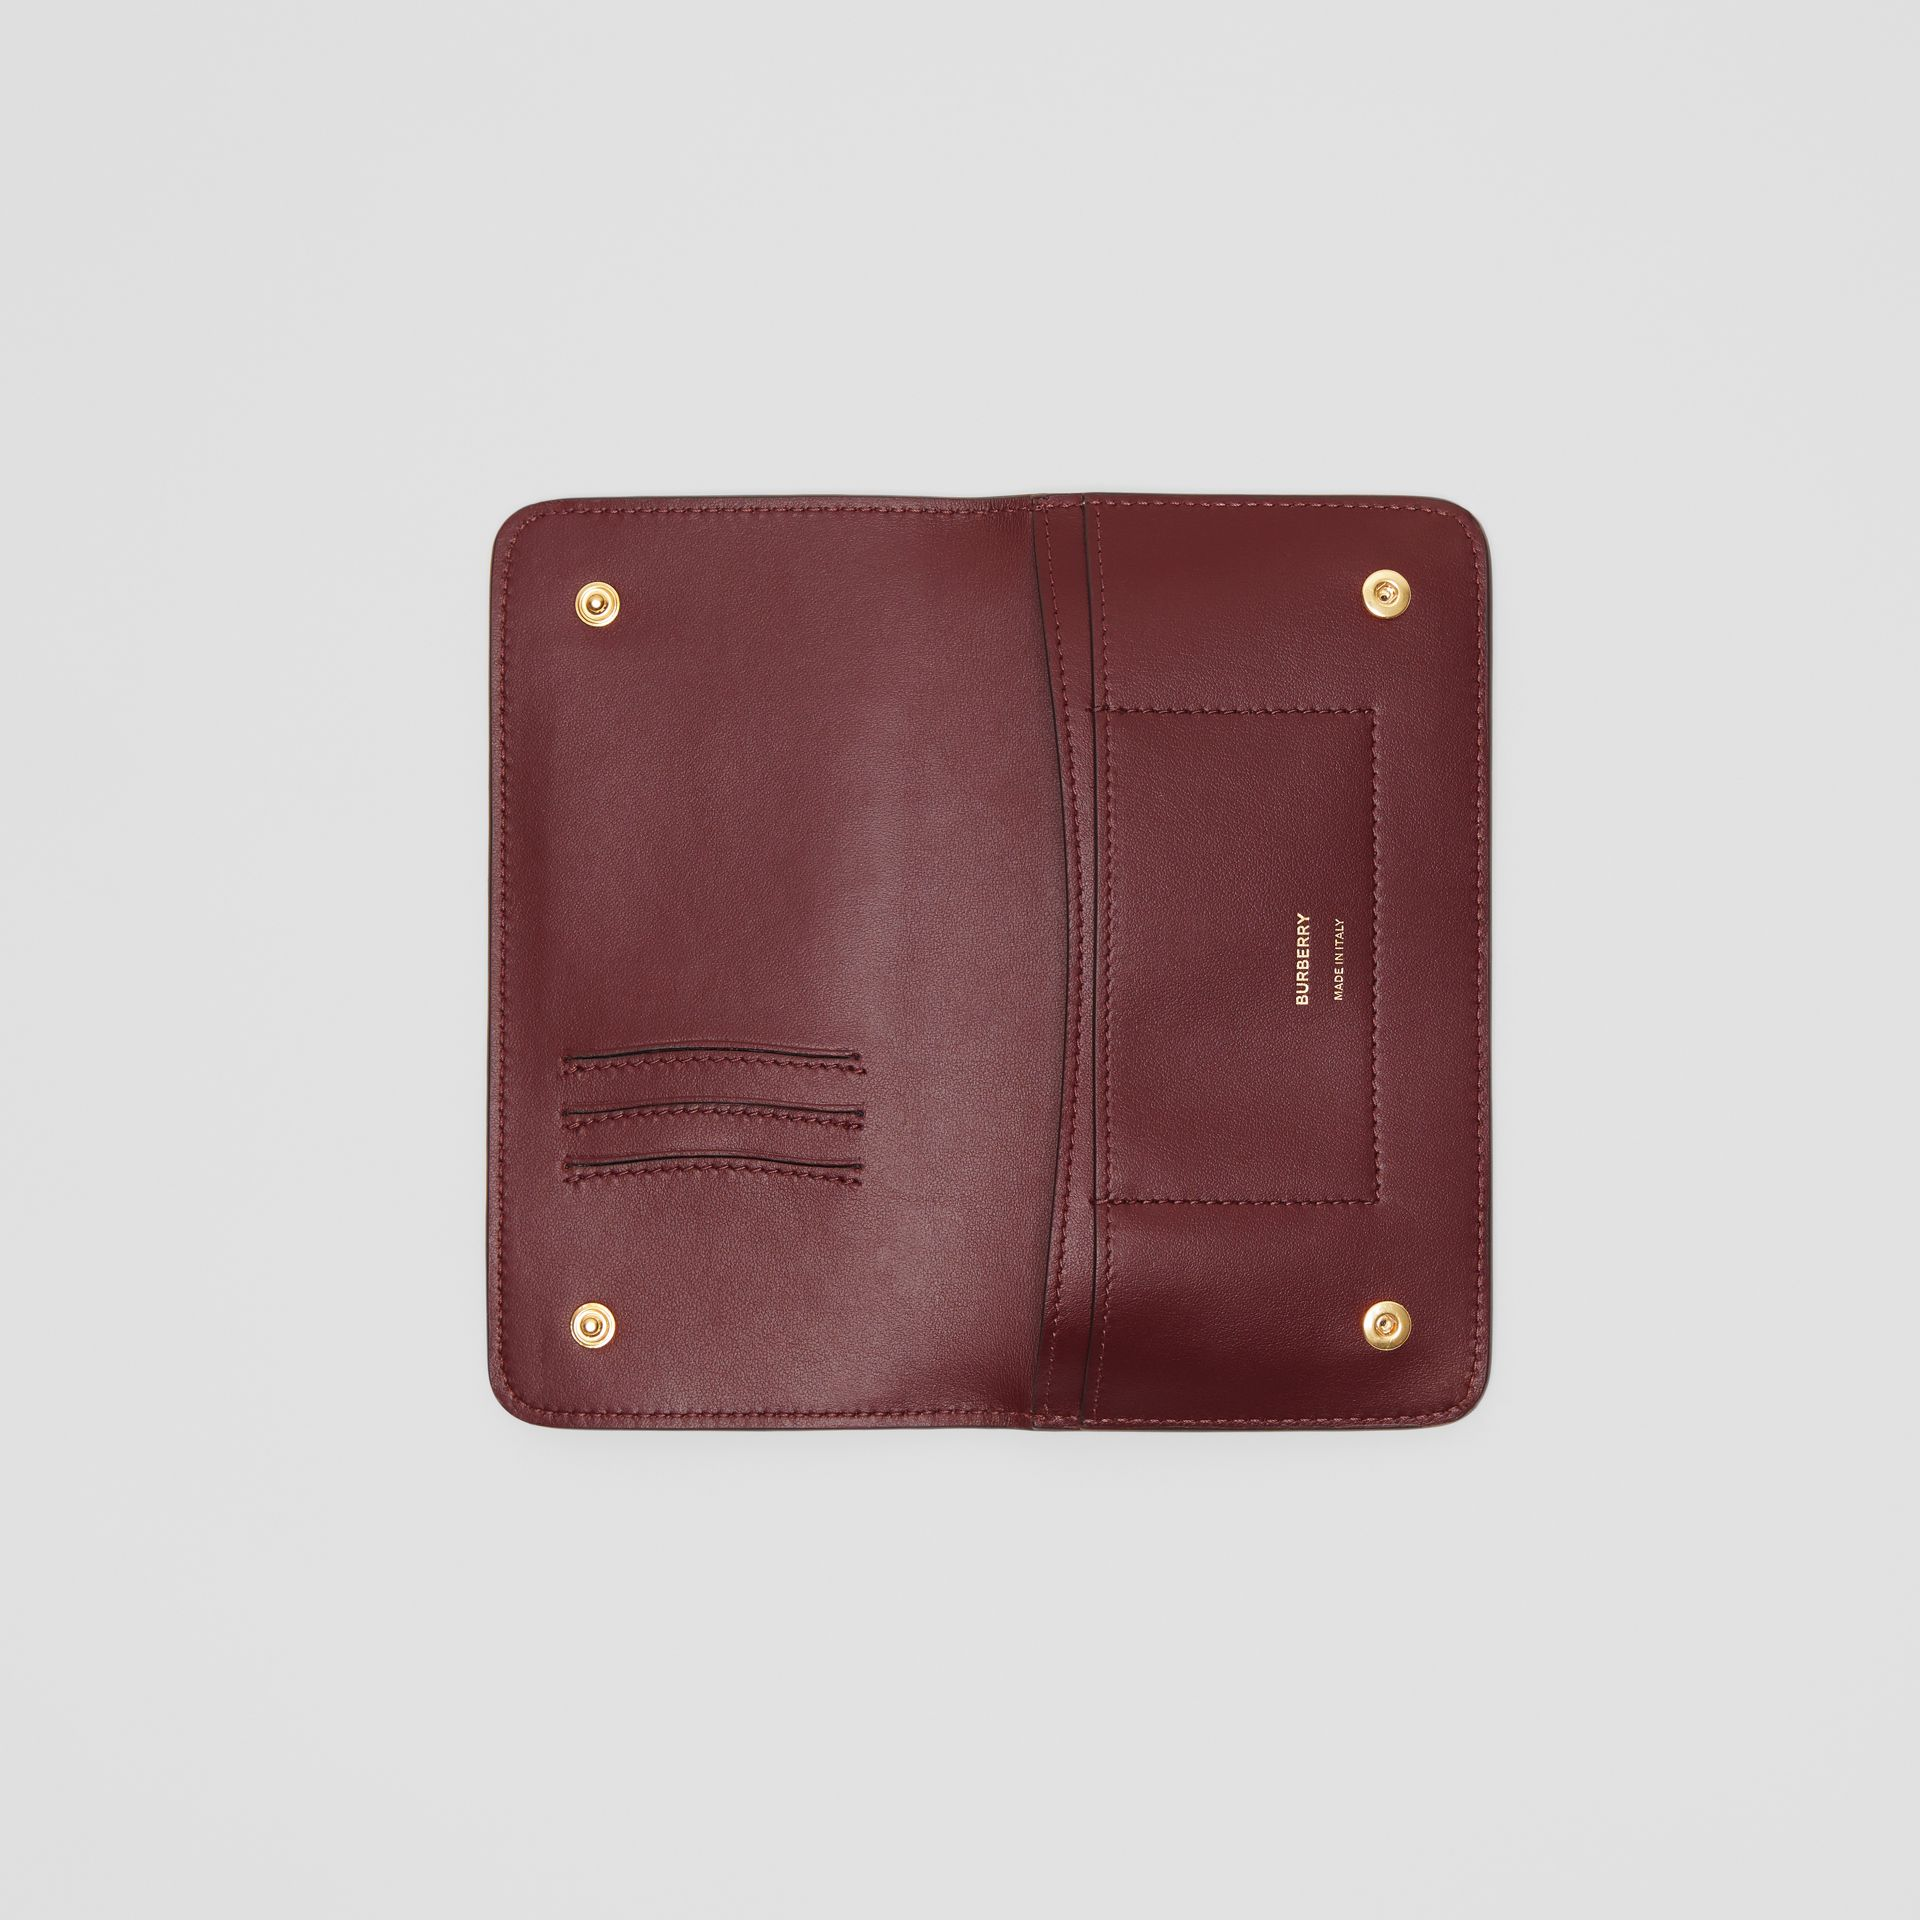 Monogram Leather Phone Wallet in Oxblood - Women | Burberry - gallery image 2